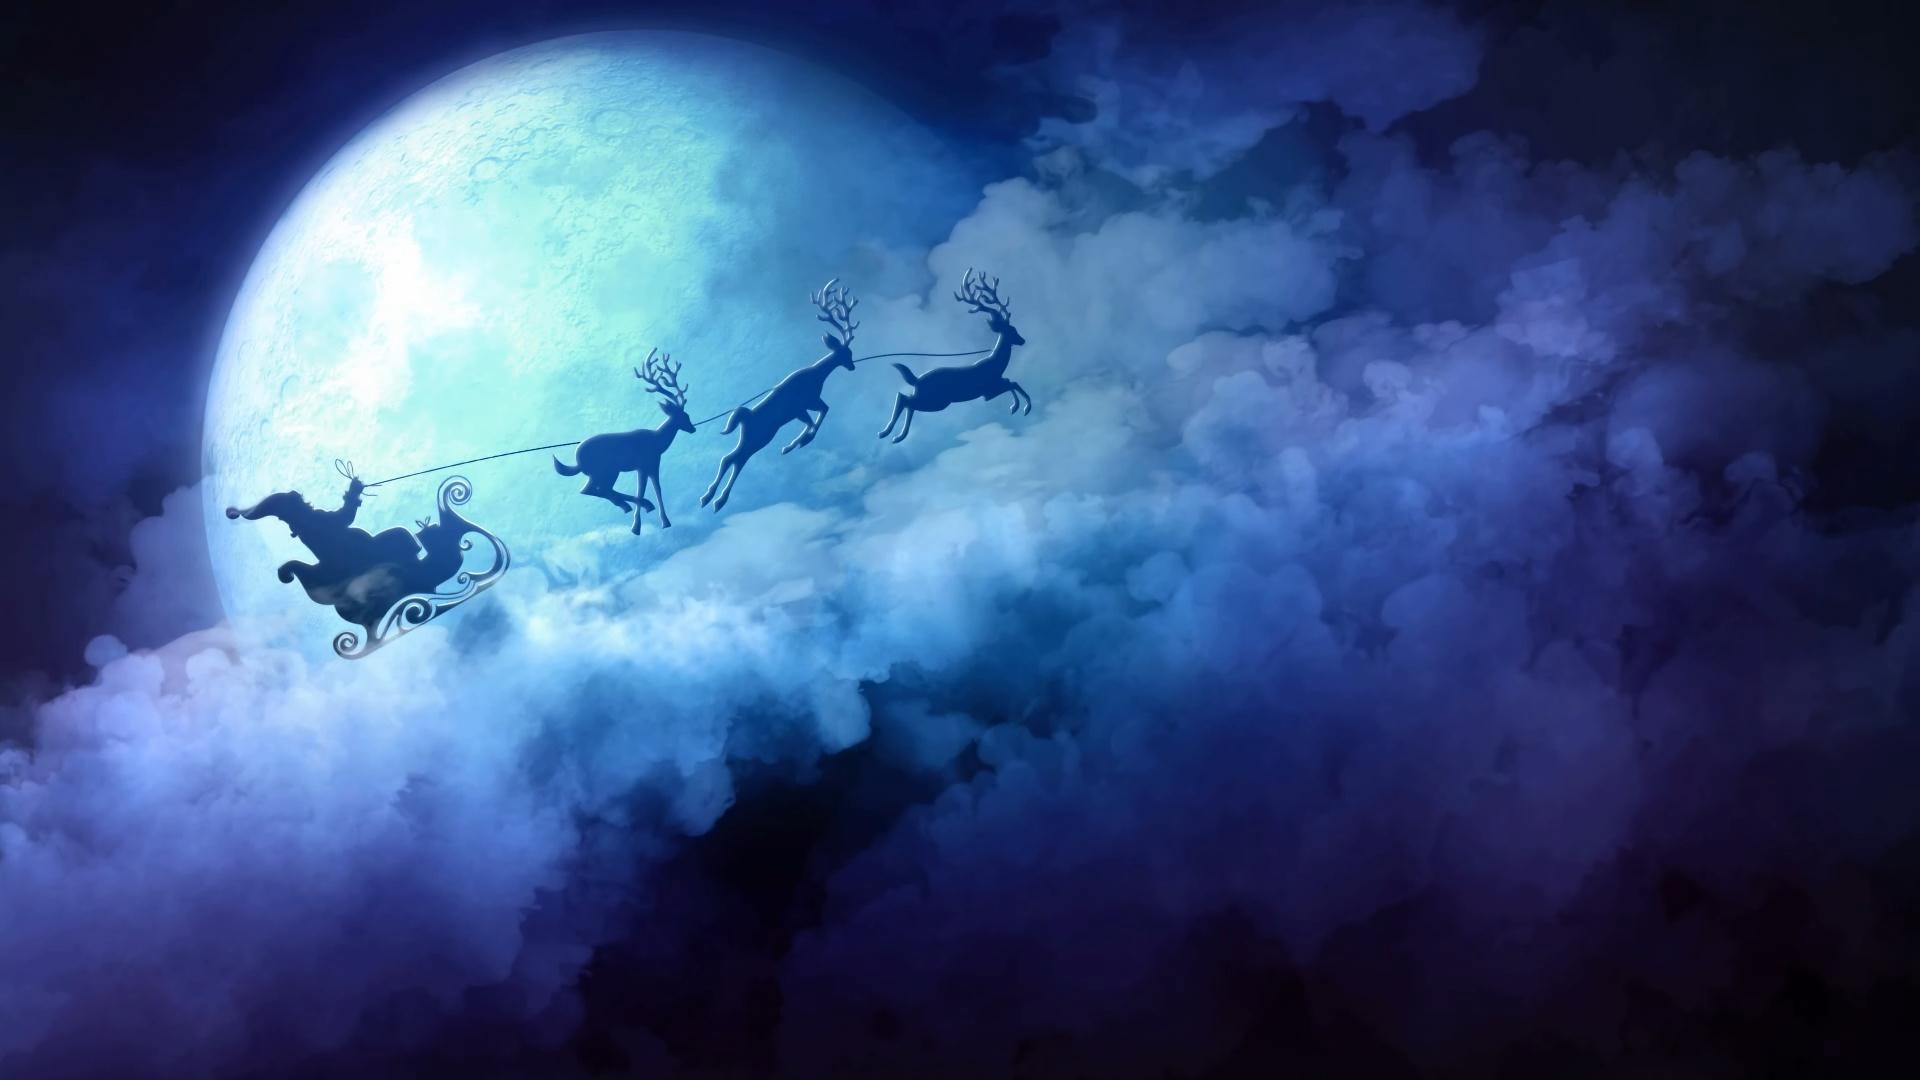 1920x1080 Live Christmas Wallpaper For Ipad